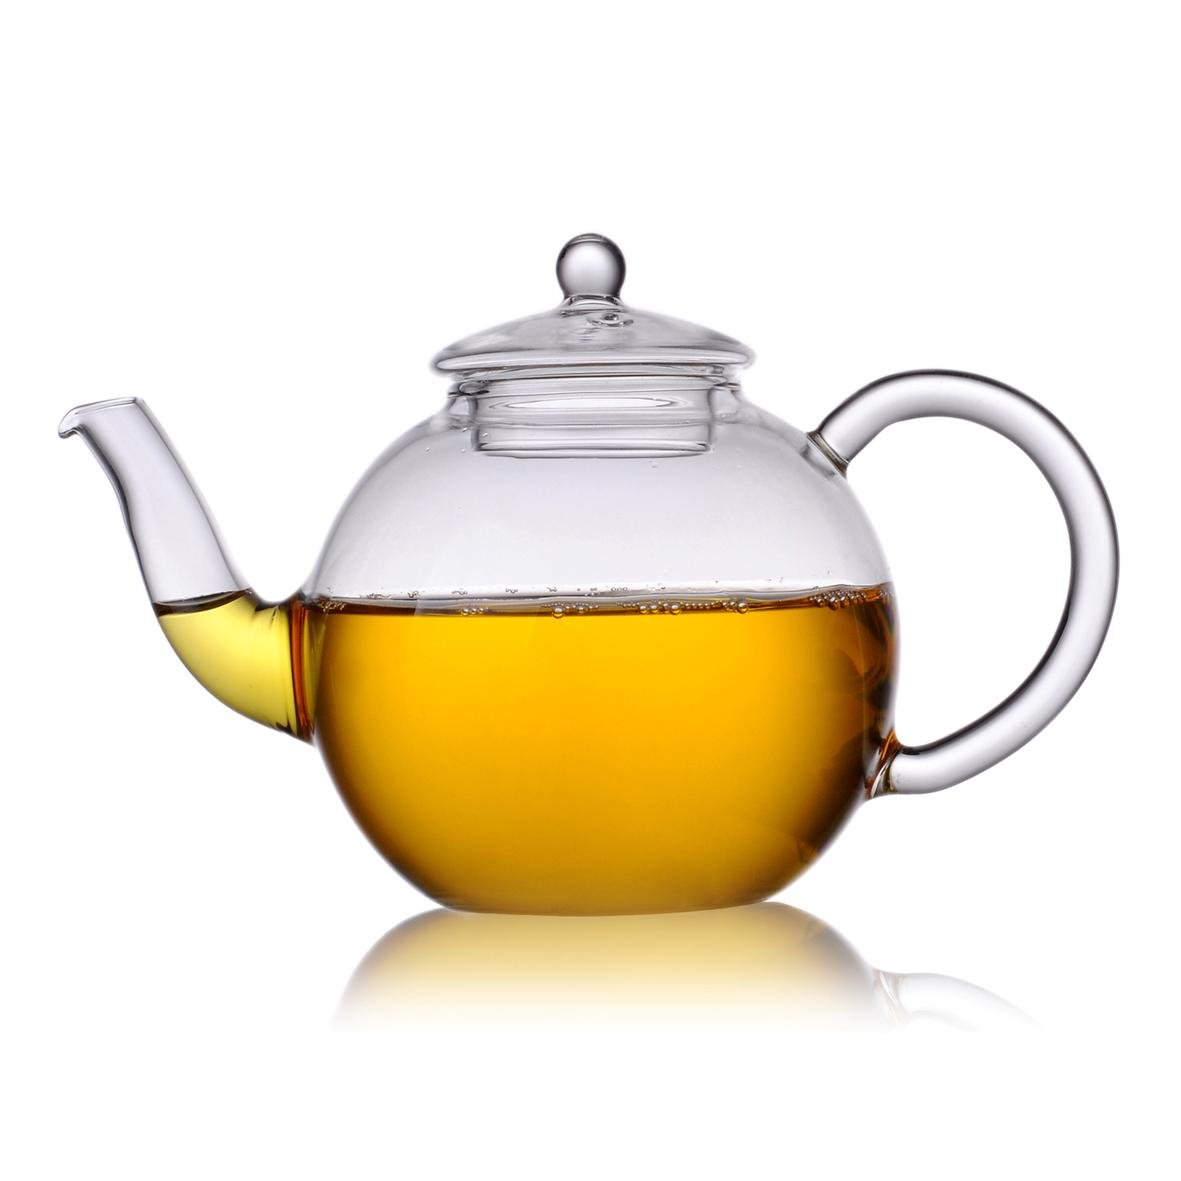 Online Store Home Decor Teapots Online Where To Buy Teapots